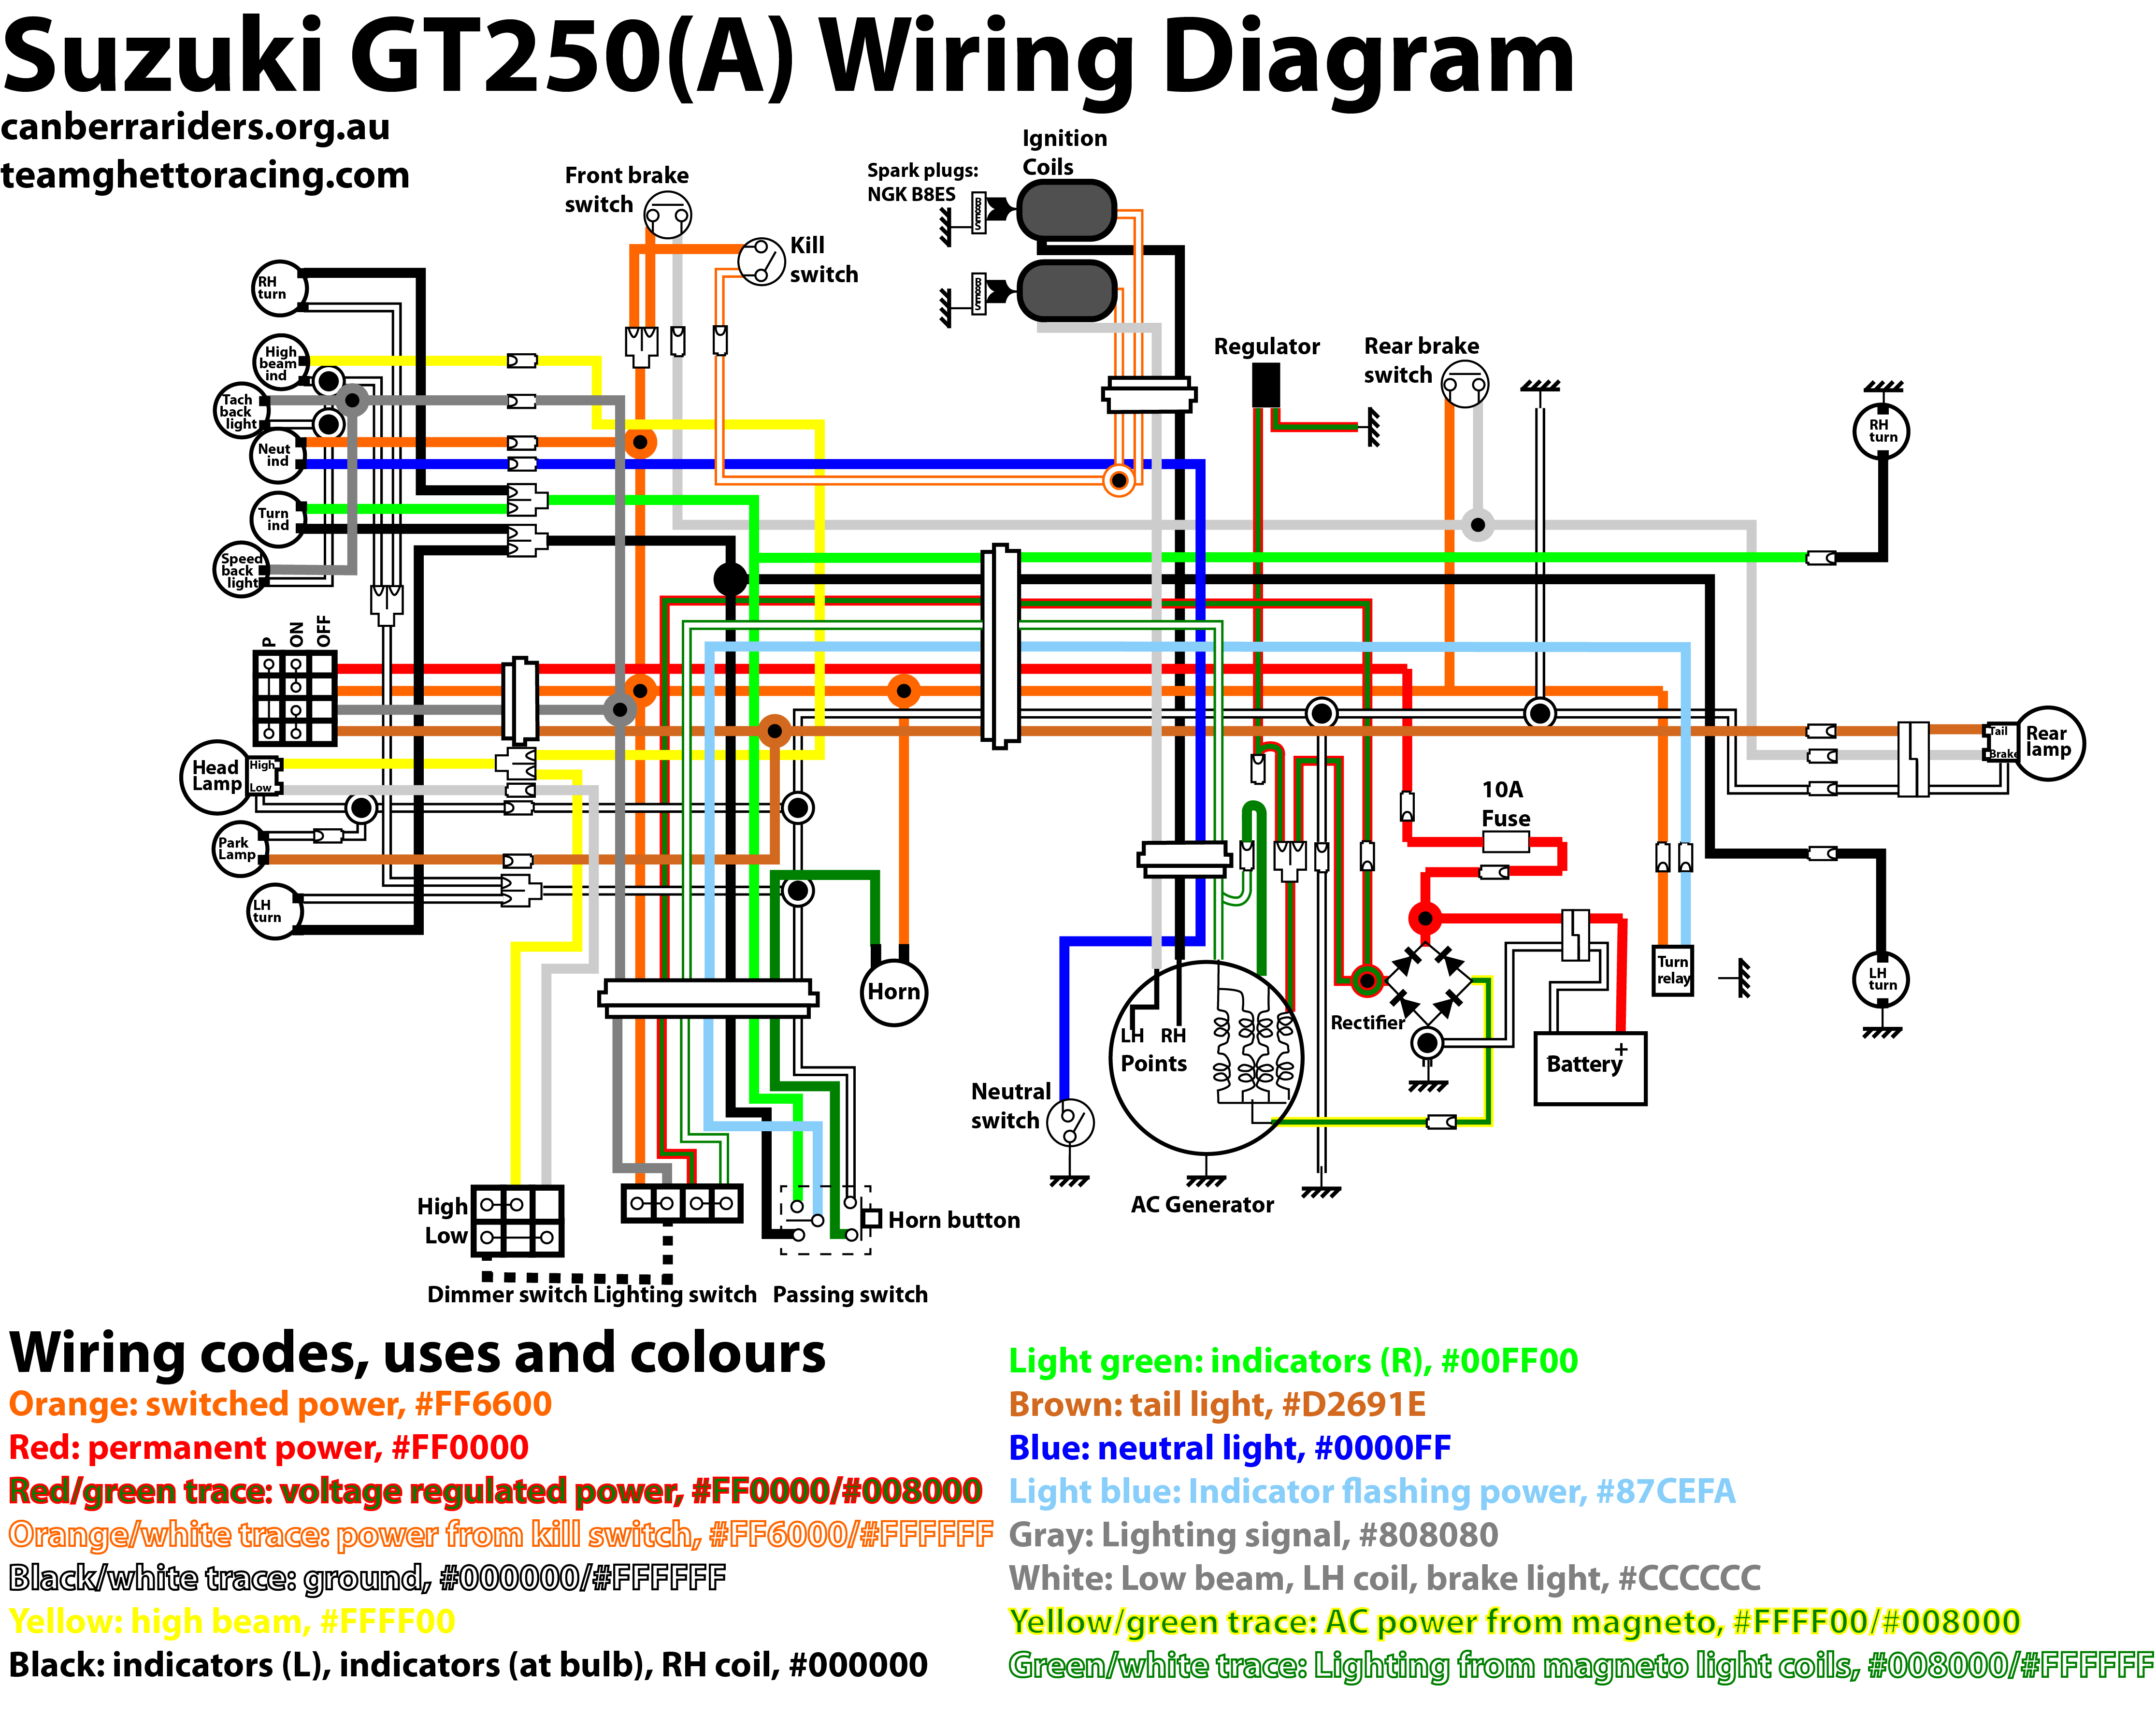 Suzuki_GT250A_Wiring_Diagram pdf] suzuki wiring diagram (28 pages) suzuki ls 650 wiring Electrical Wiring Diagrams for Motorcycles at bayanpartner.co